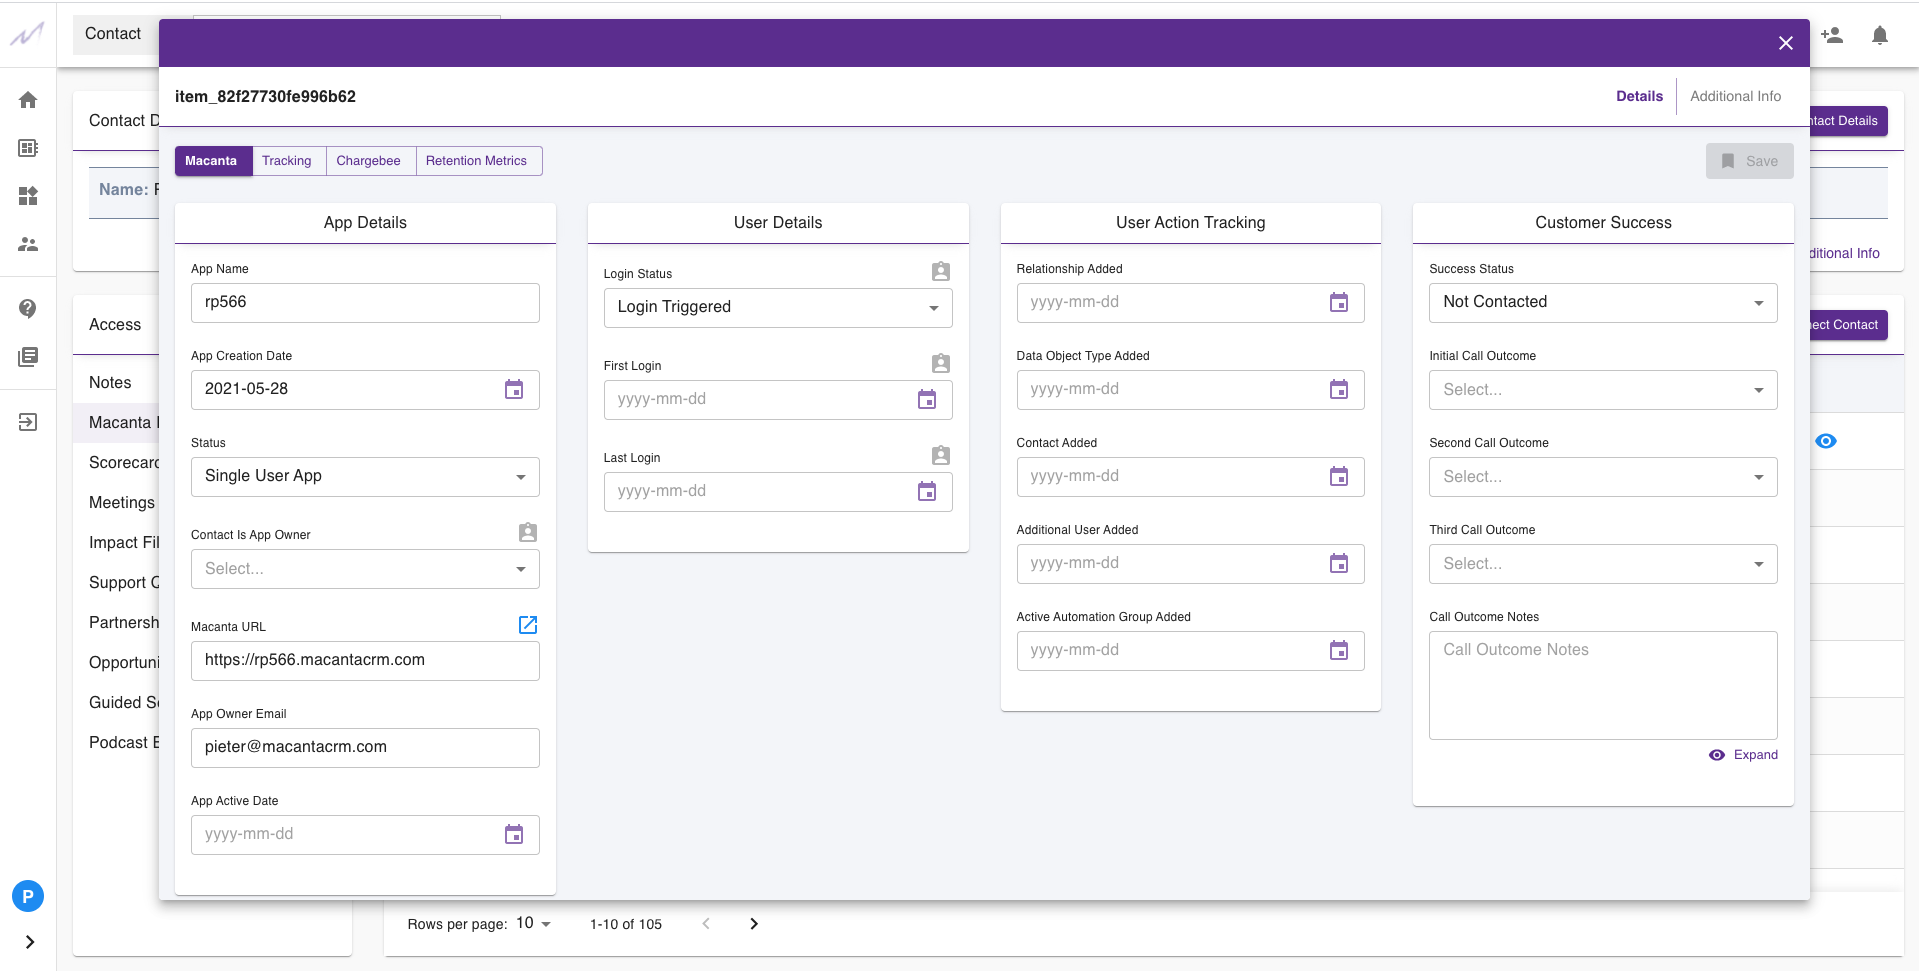 Create a custom interface layout for any and all data you need to hold on your prospects, customers and the additional data related to the running of your business and processes.